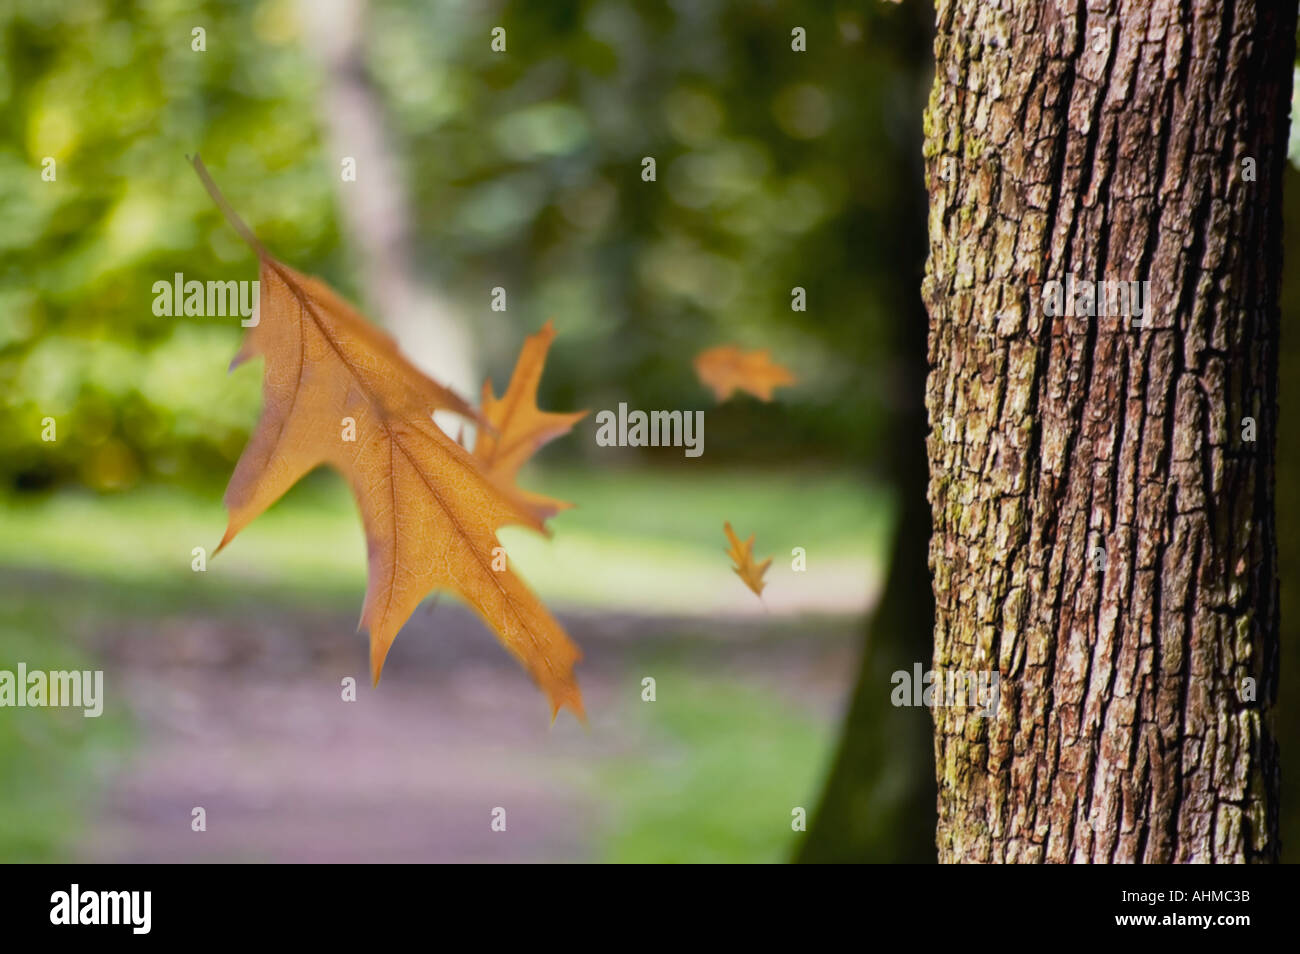 Autumn Leaves falling from a tree - Stock Image